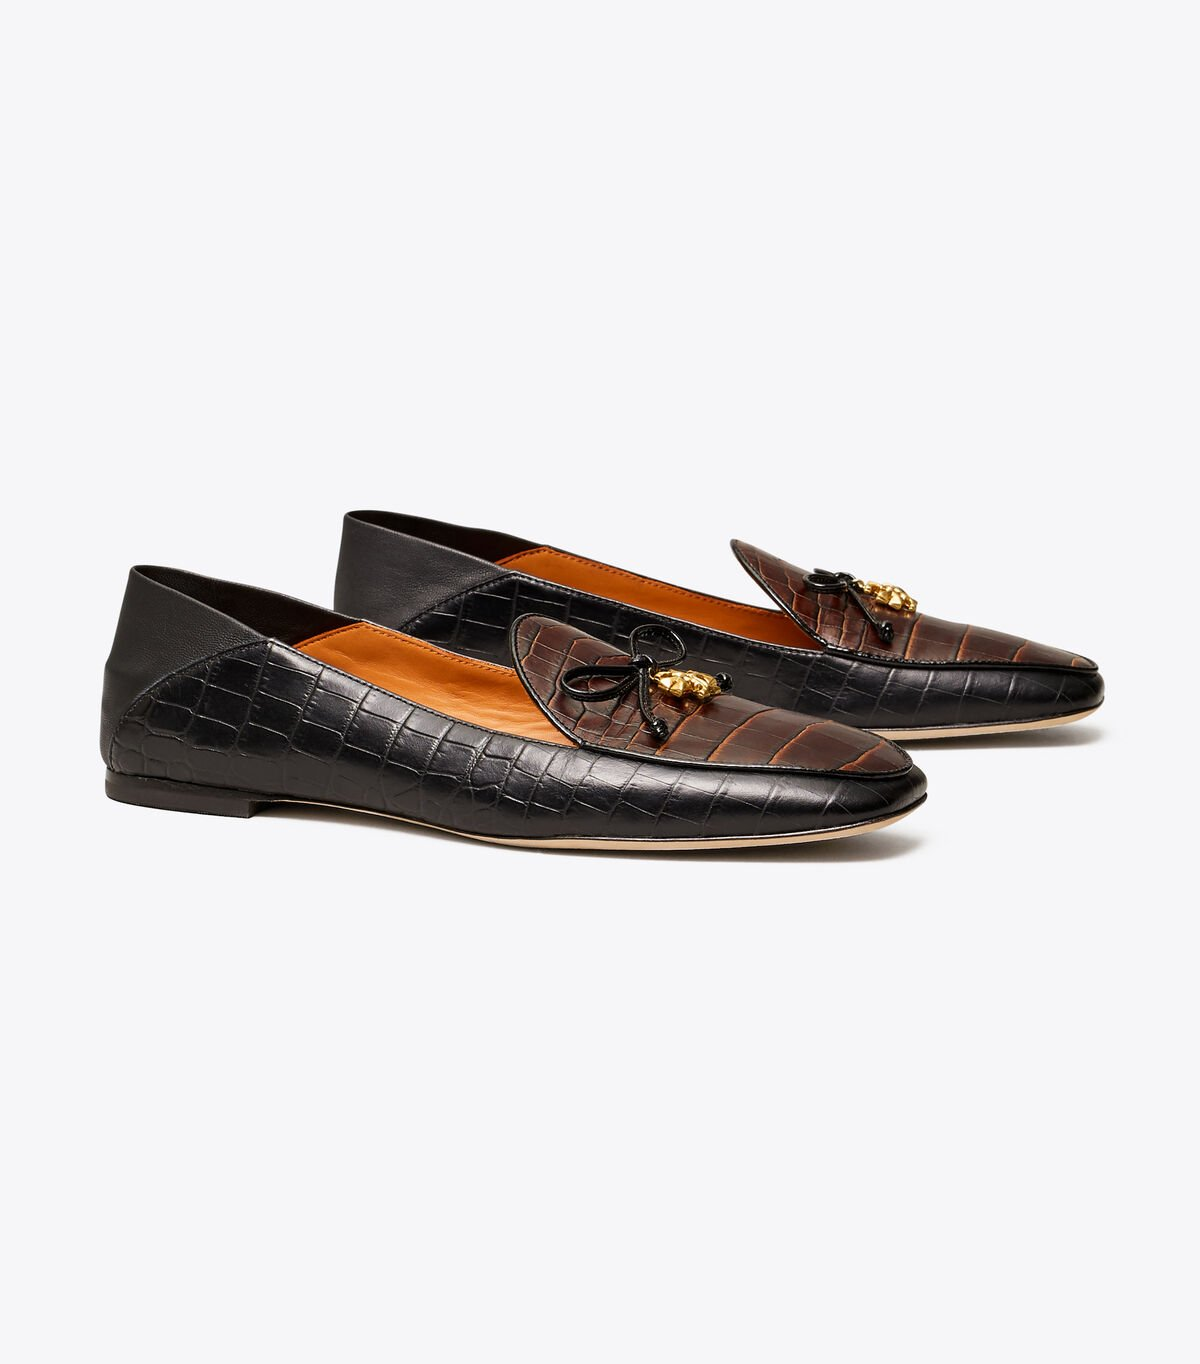 TORY CHARM 5MM LOAFER